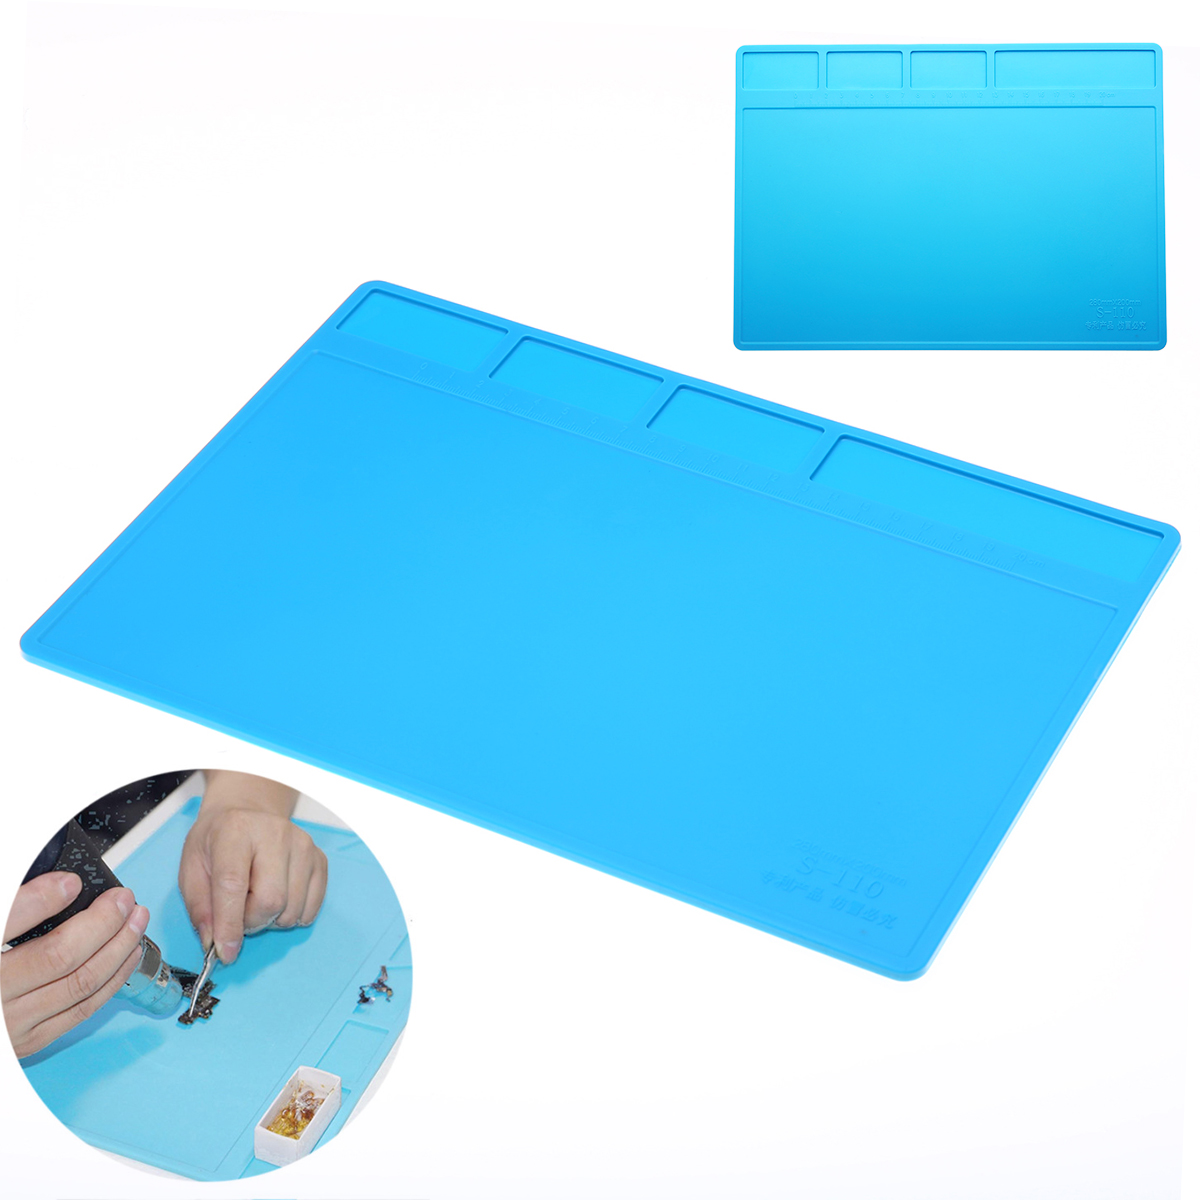 1pc New Soldering Repair Maintenance Platform Heat Insulation Silicone Pad Mat 28*20 Cm Anti-corrosion Soldering Pad Desk